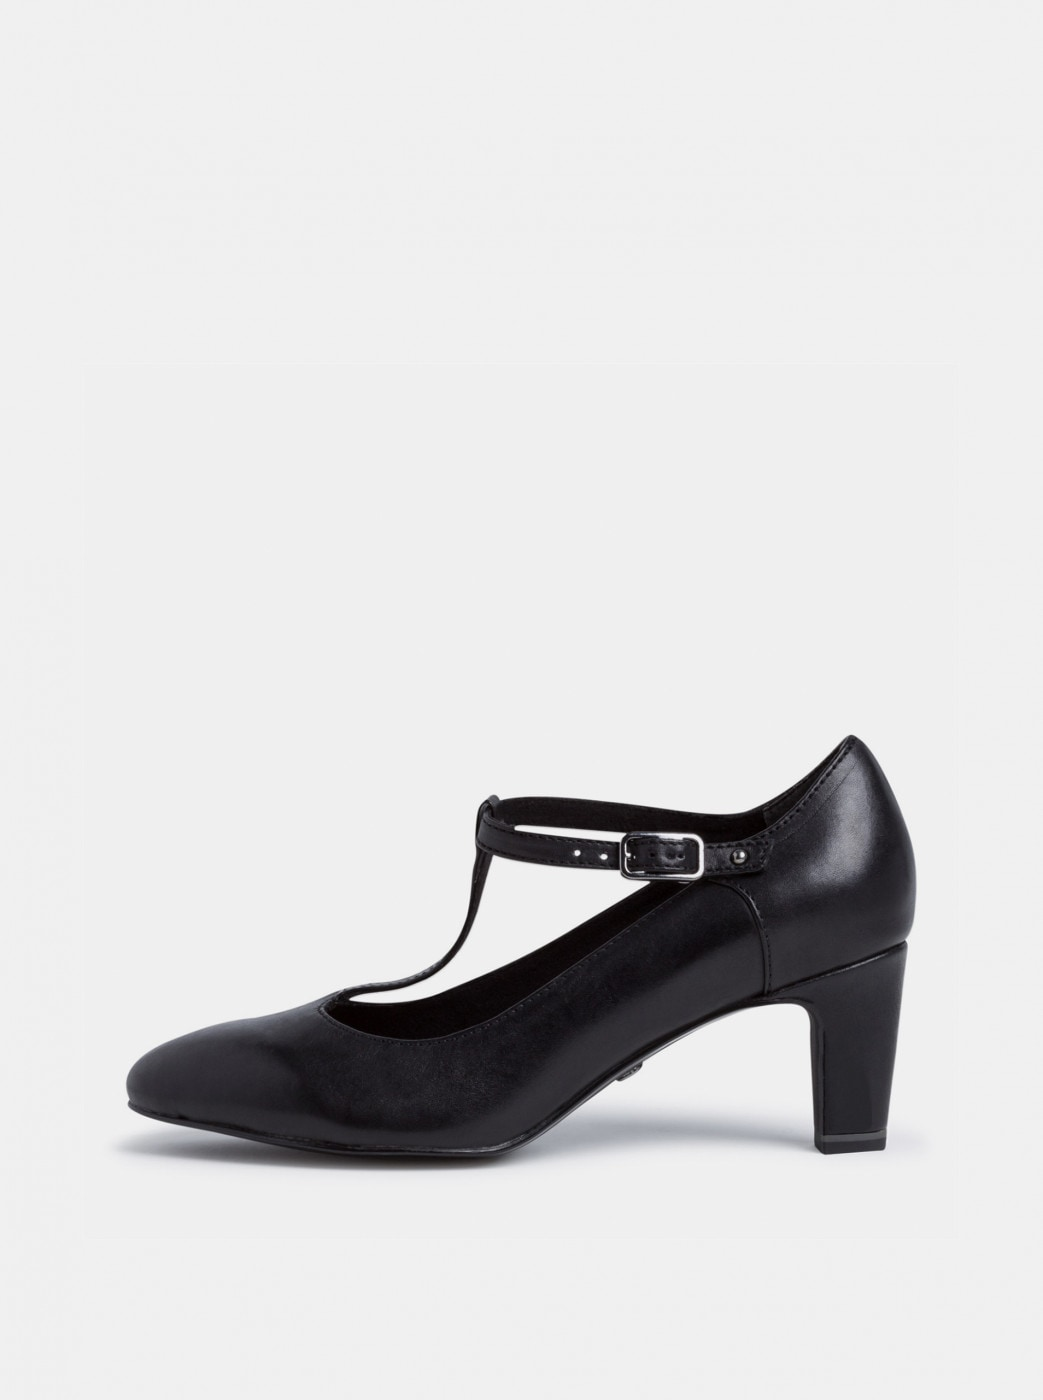 Tamaris Black Leather Pumps